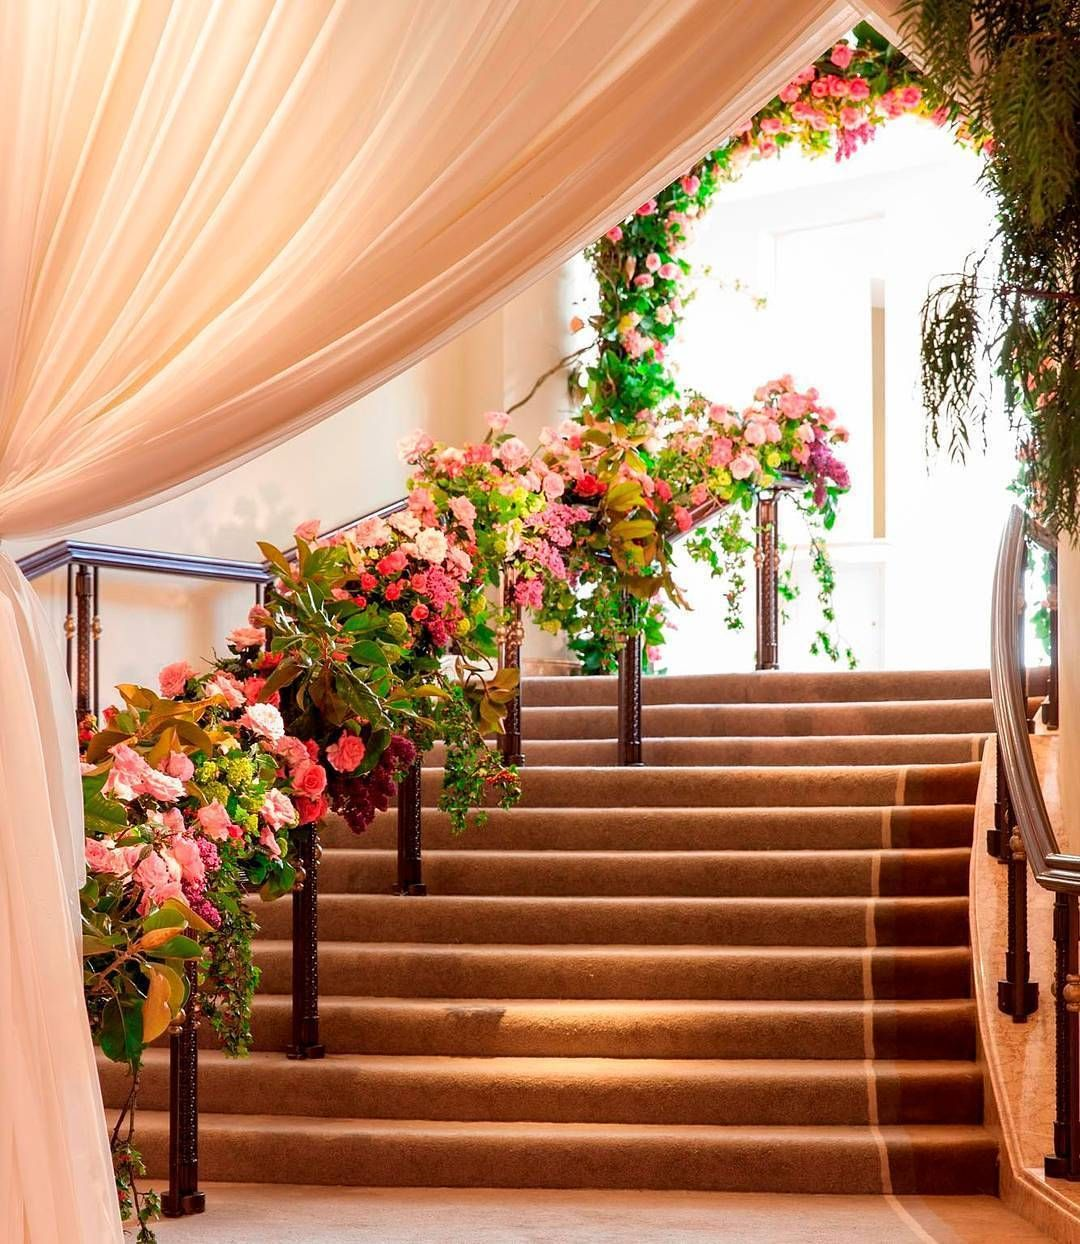 Wedding decorations ghana  Stunning textures and color in this beautiful staircase Venue